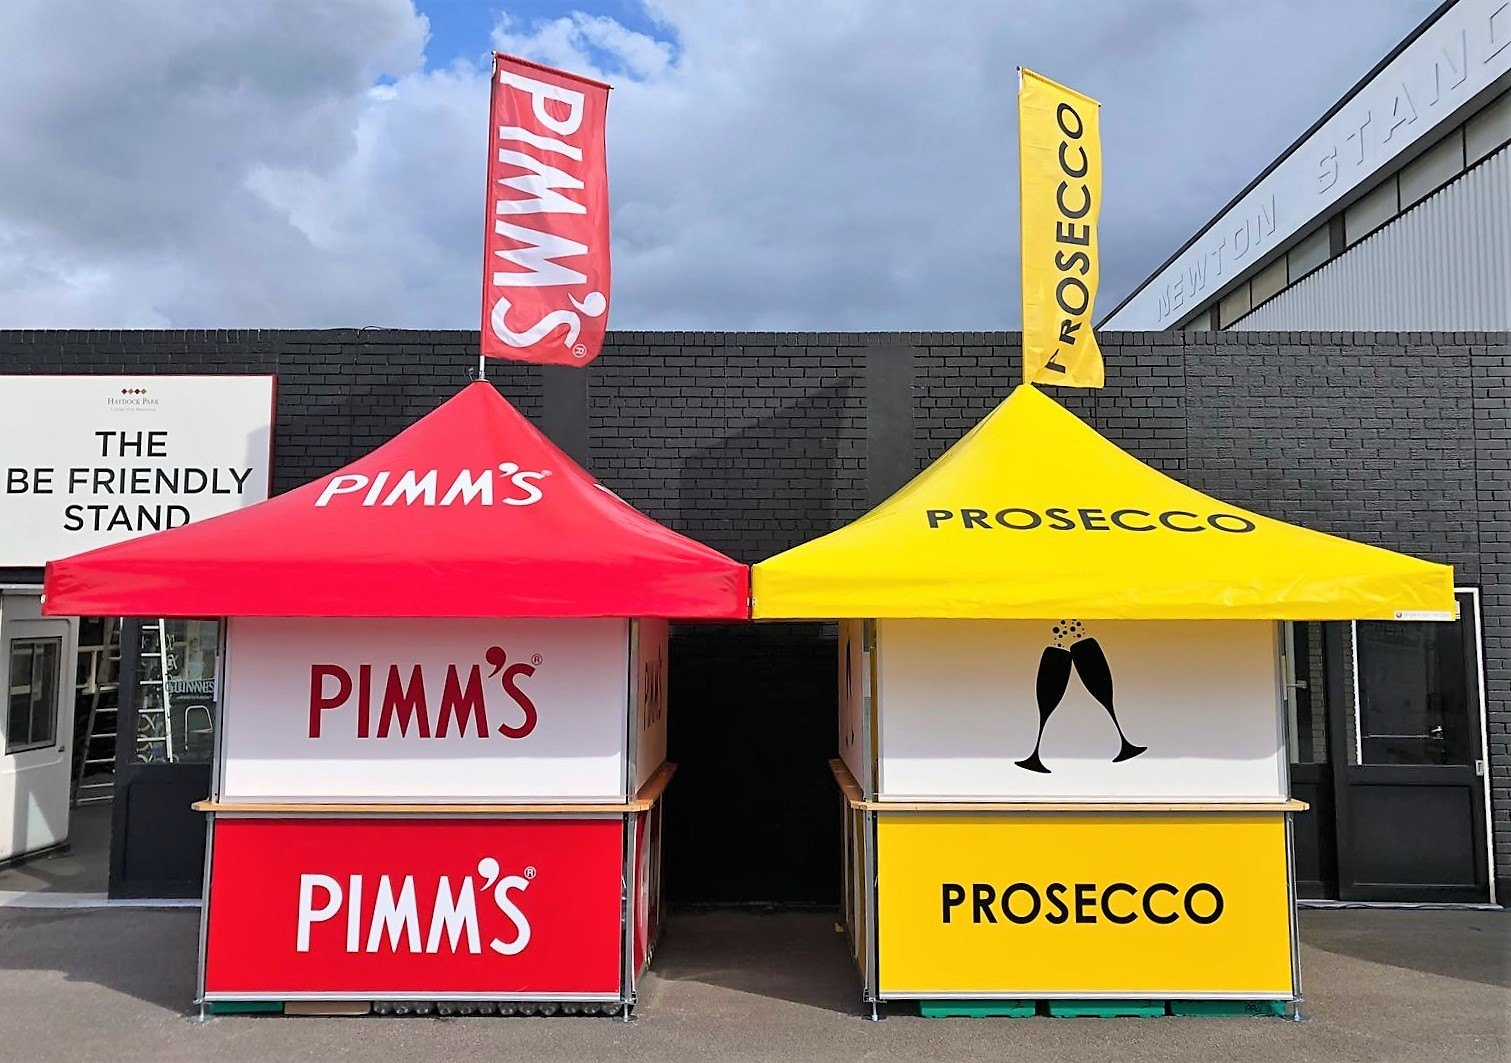 <p>Event, Mobile &amp; Stadia Bars &#8211; Tents &amp; Marquees &#8211; Square Pavilion</p> <p>&nbsp;</p> <p>Outdoor Event Bars &#8211; Pimm&#8217;s &amp; Prosecco.</p> <p>&nbsp;</p> <p>Ideally suited for serving premium drinks brands as outdoor event bars at sporting venues, high-end party events etc.</p> <p>&nbsp;</p> <p>Square Pavilions are small enough to work in small spaces, but big enough to make your brand look its best and stand out in the crowd</p>